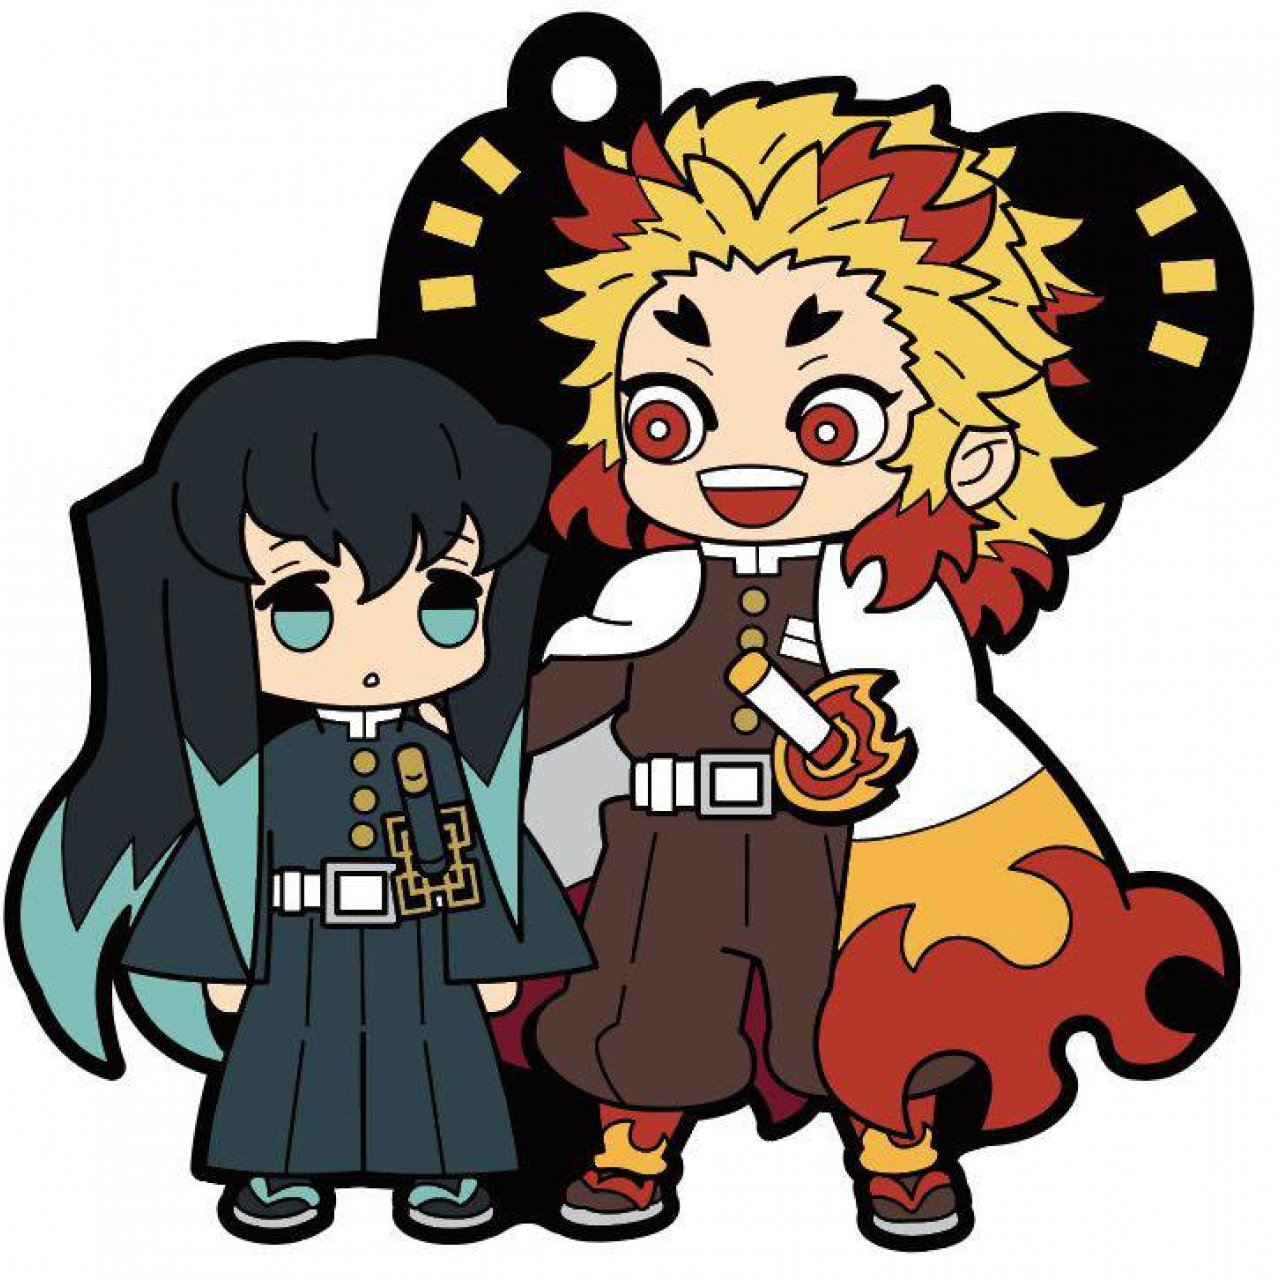 Demon Slayer: Kimetsu no Yaiba Rubber Mascot 6 cm Assortment Vol. 2 (6)